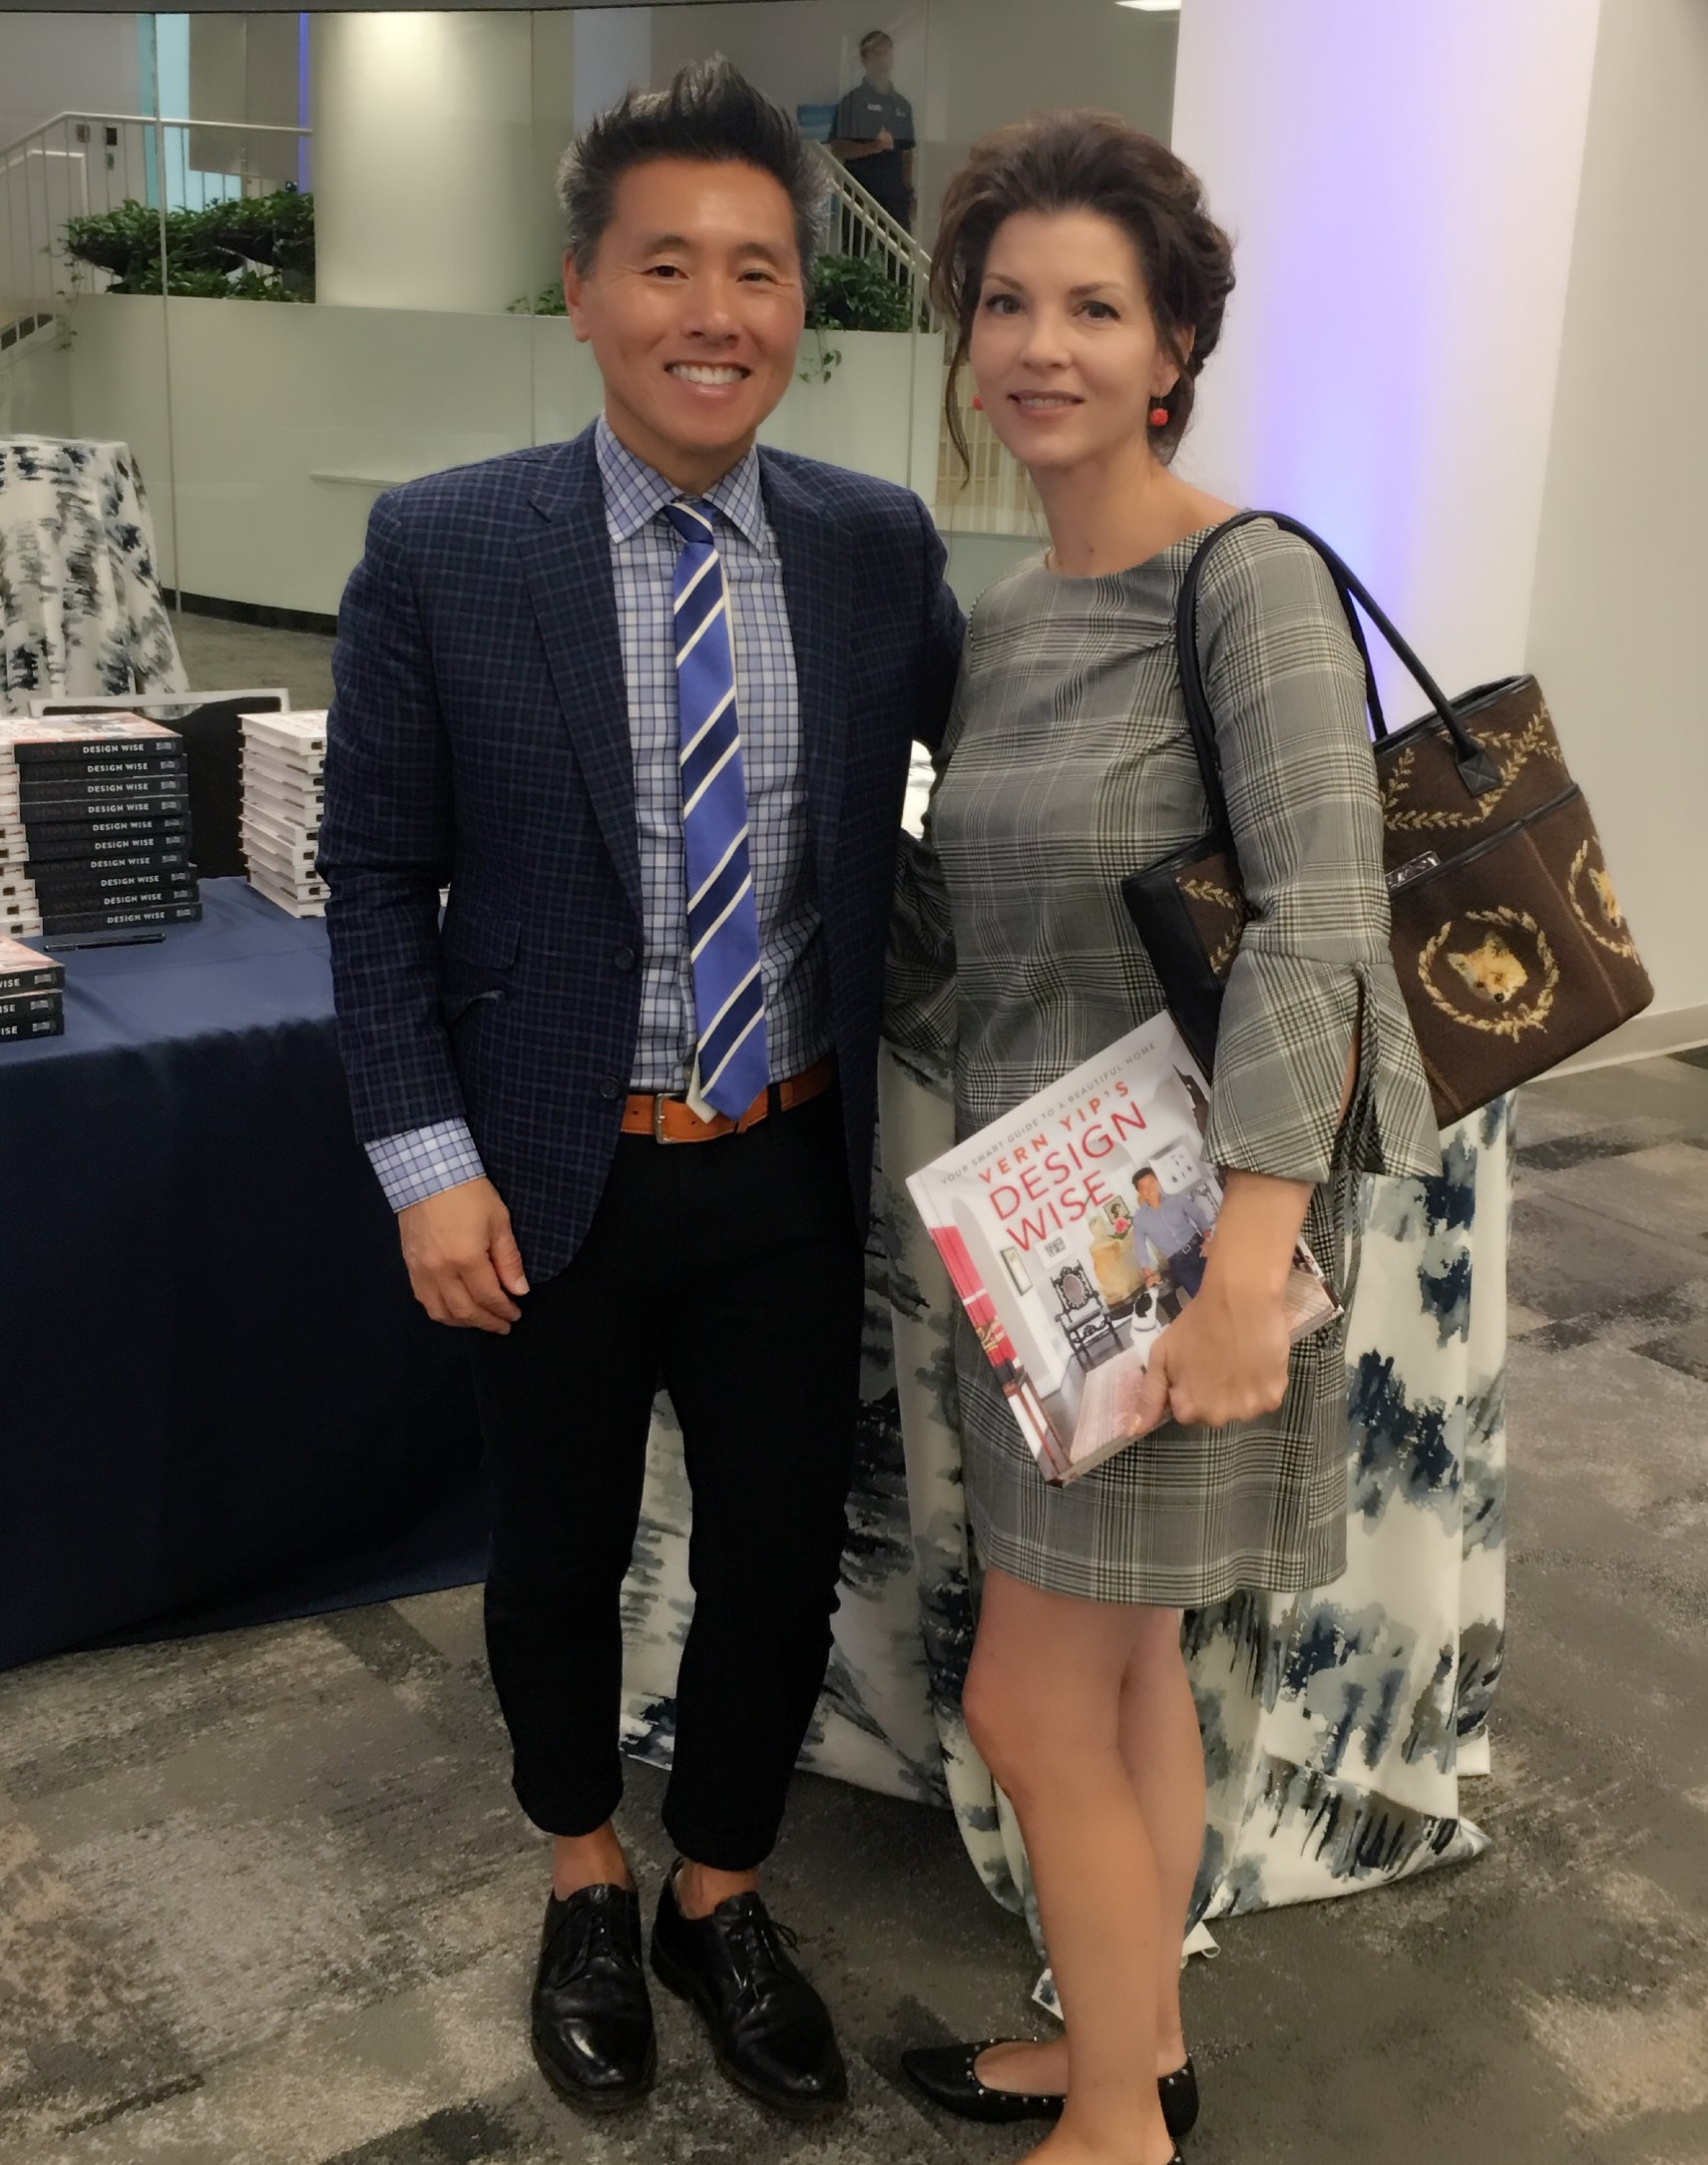 Ginger Hartford congratulates Vern Yip - the epitome of a gentleman as a kind, humble and humorous Designer!